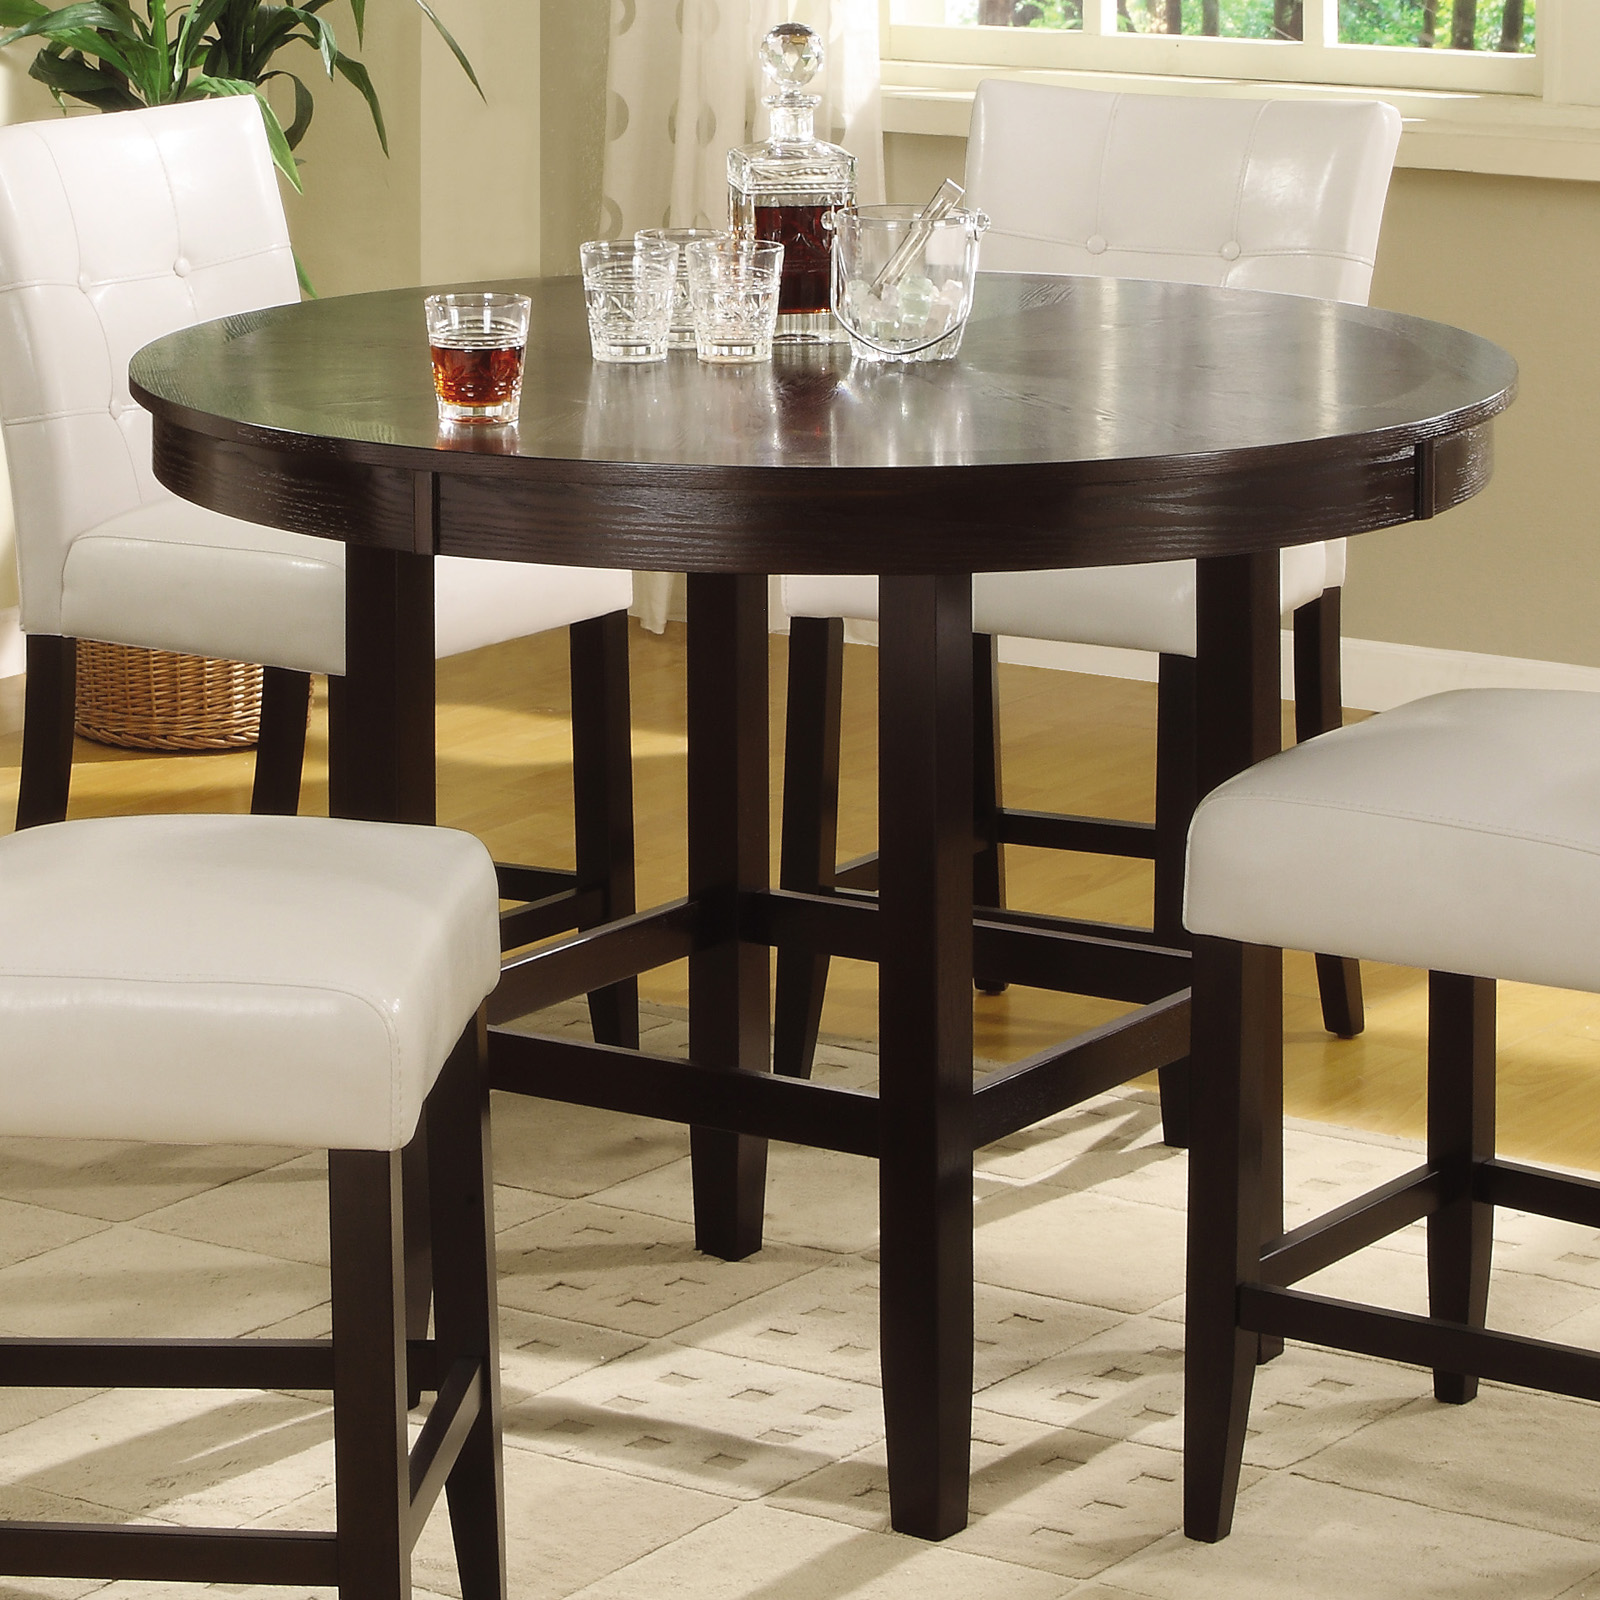 tall dining tables tall kitchen chairs Height Tables Dining